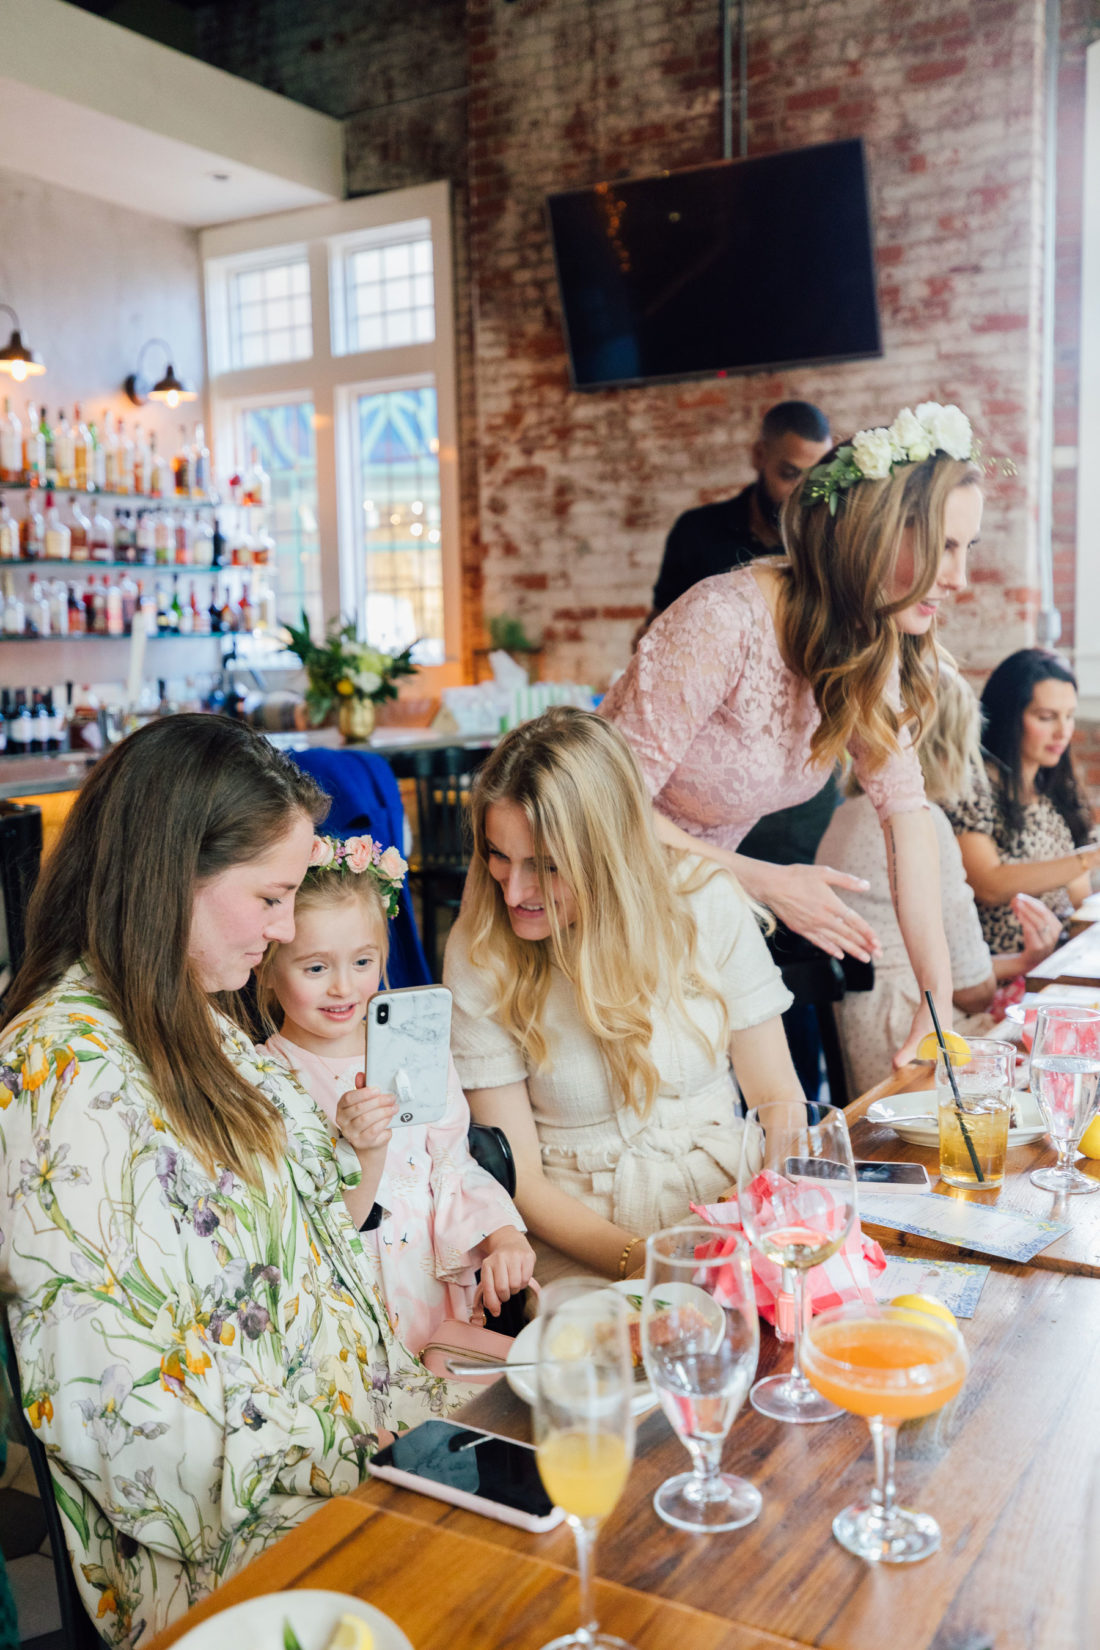 Blogger Eva Amurri and friends at her Baby Sprinkle